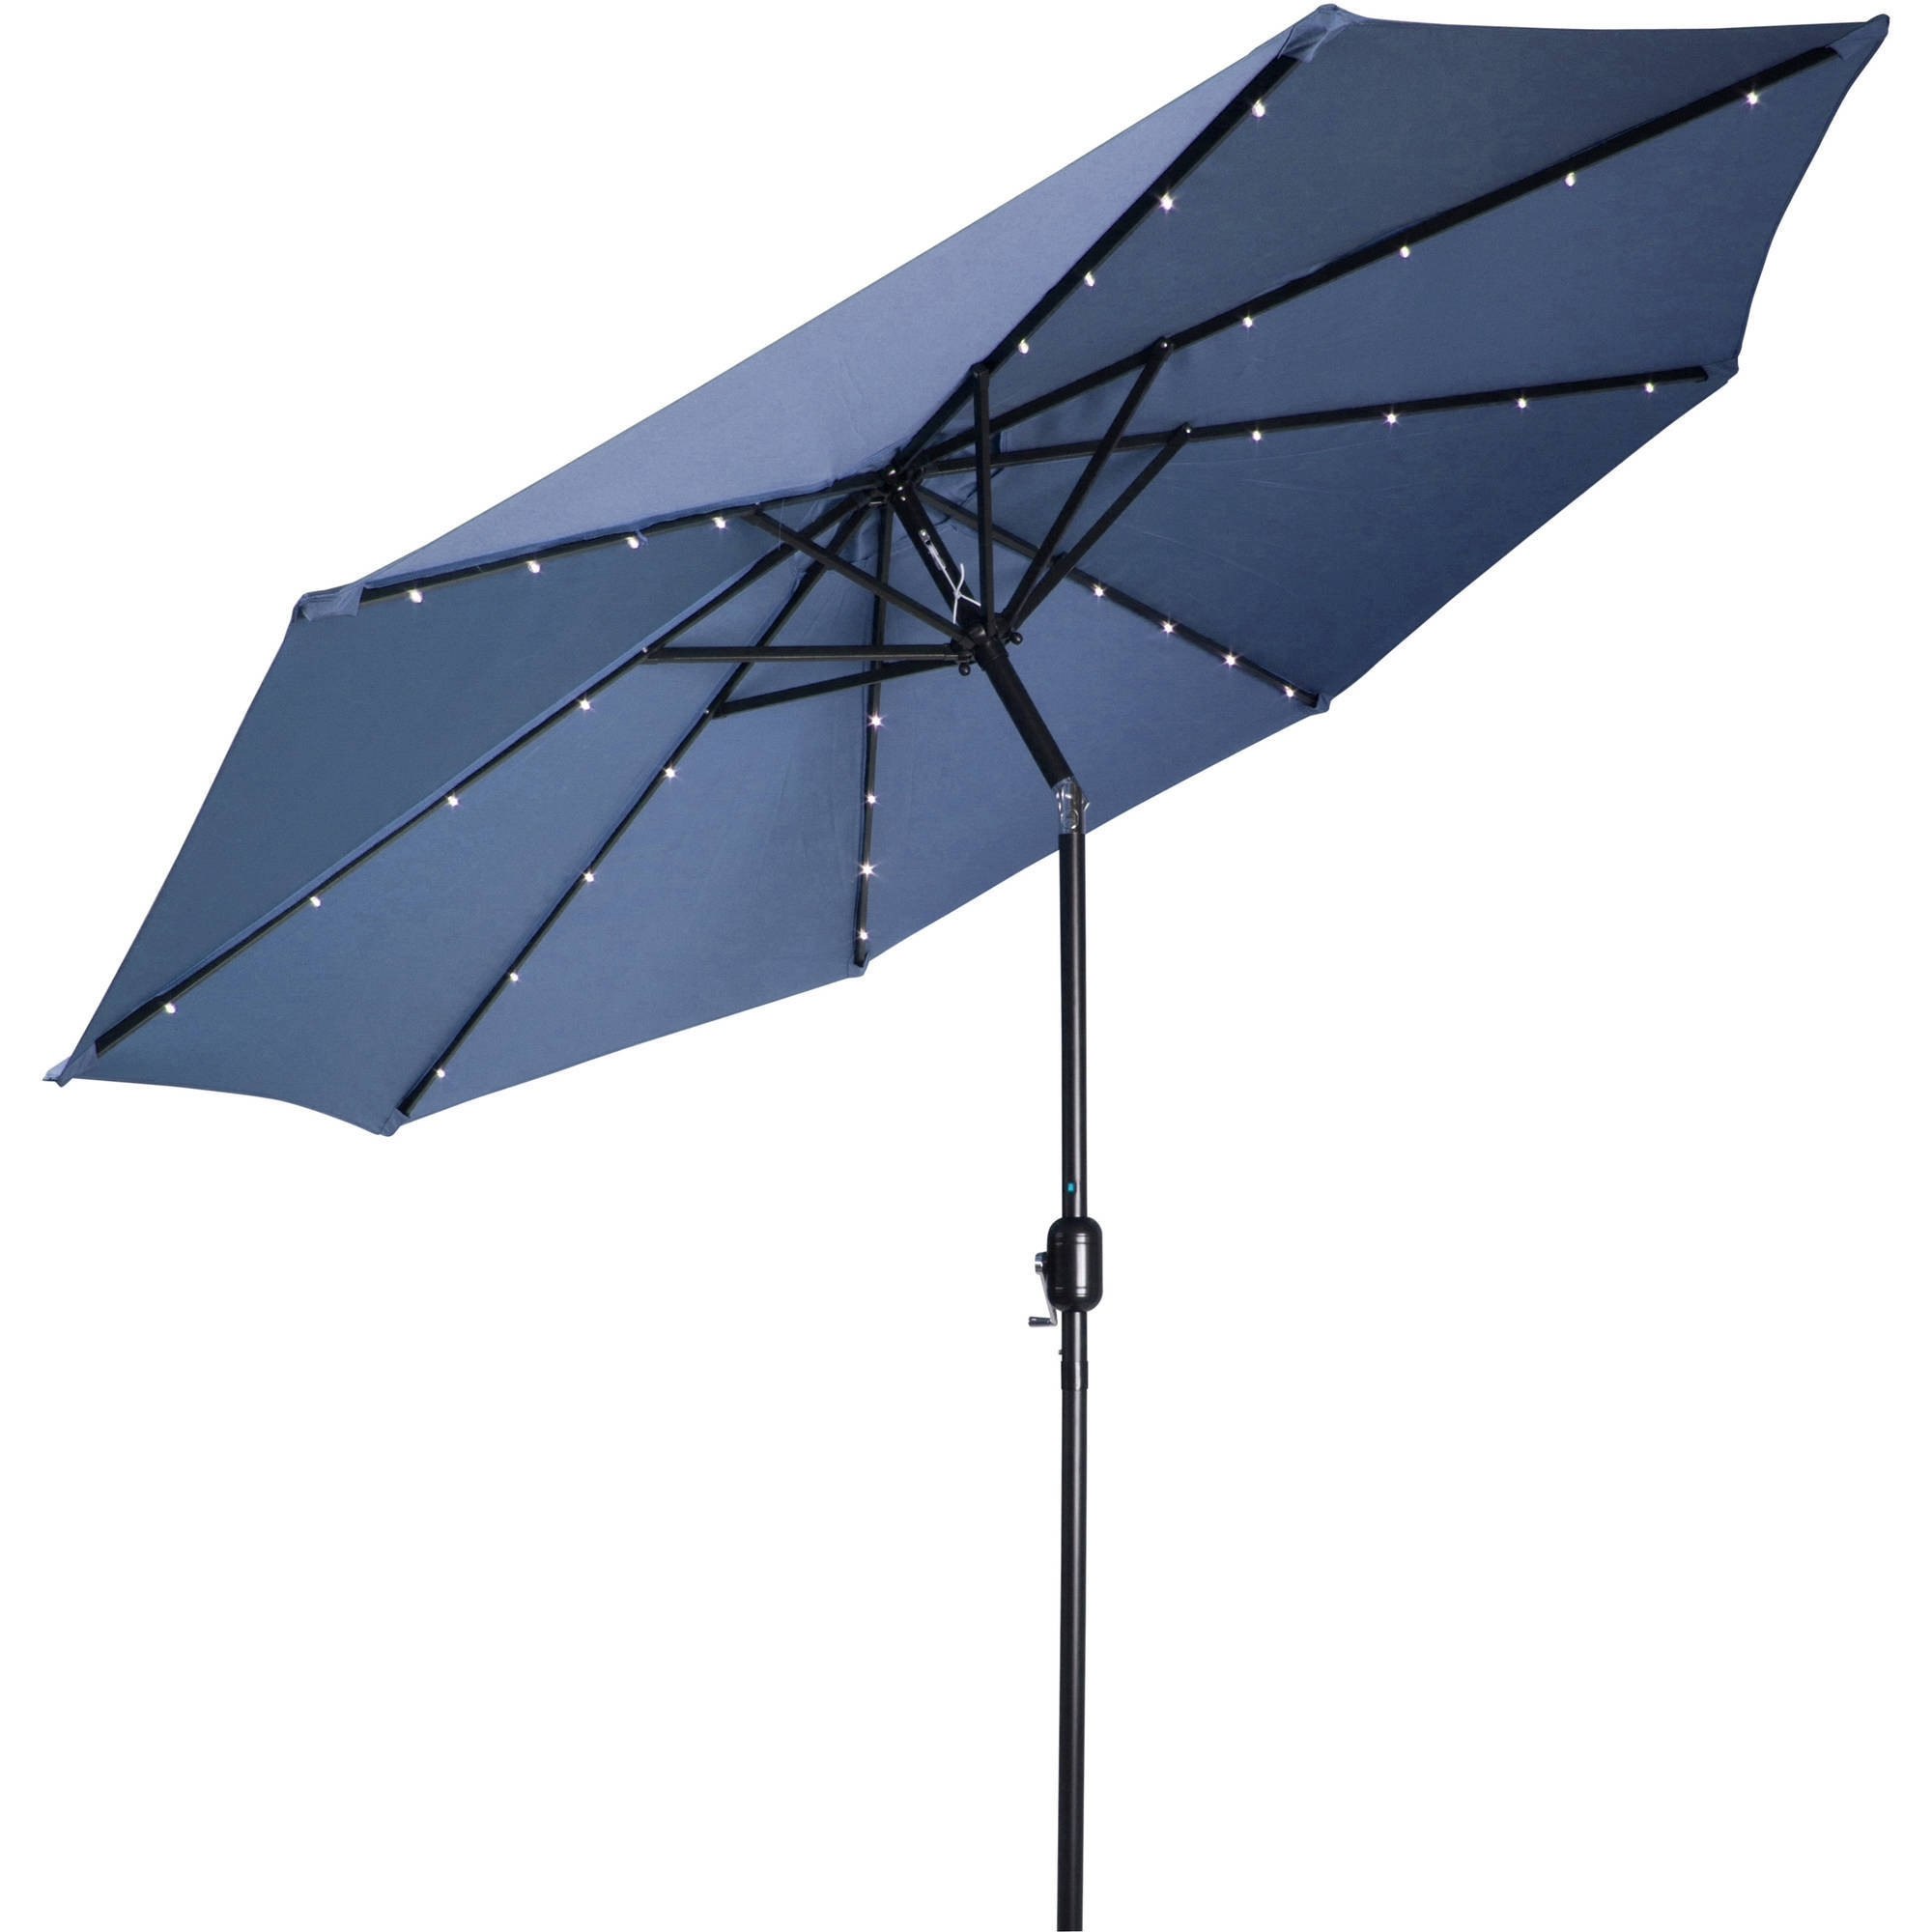 Patio Umbrellas For Windy Locations With Regard To Recent Best Patio Umbrella For Wind Inspirational Costway 10ft Patio Solar (View 19 of 20)